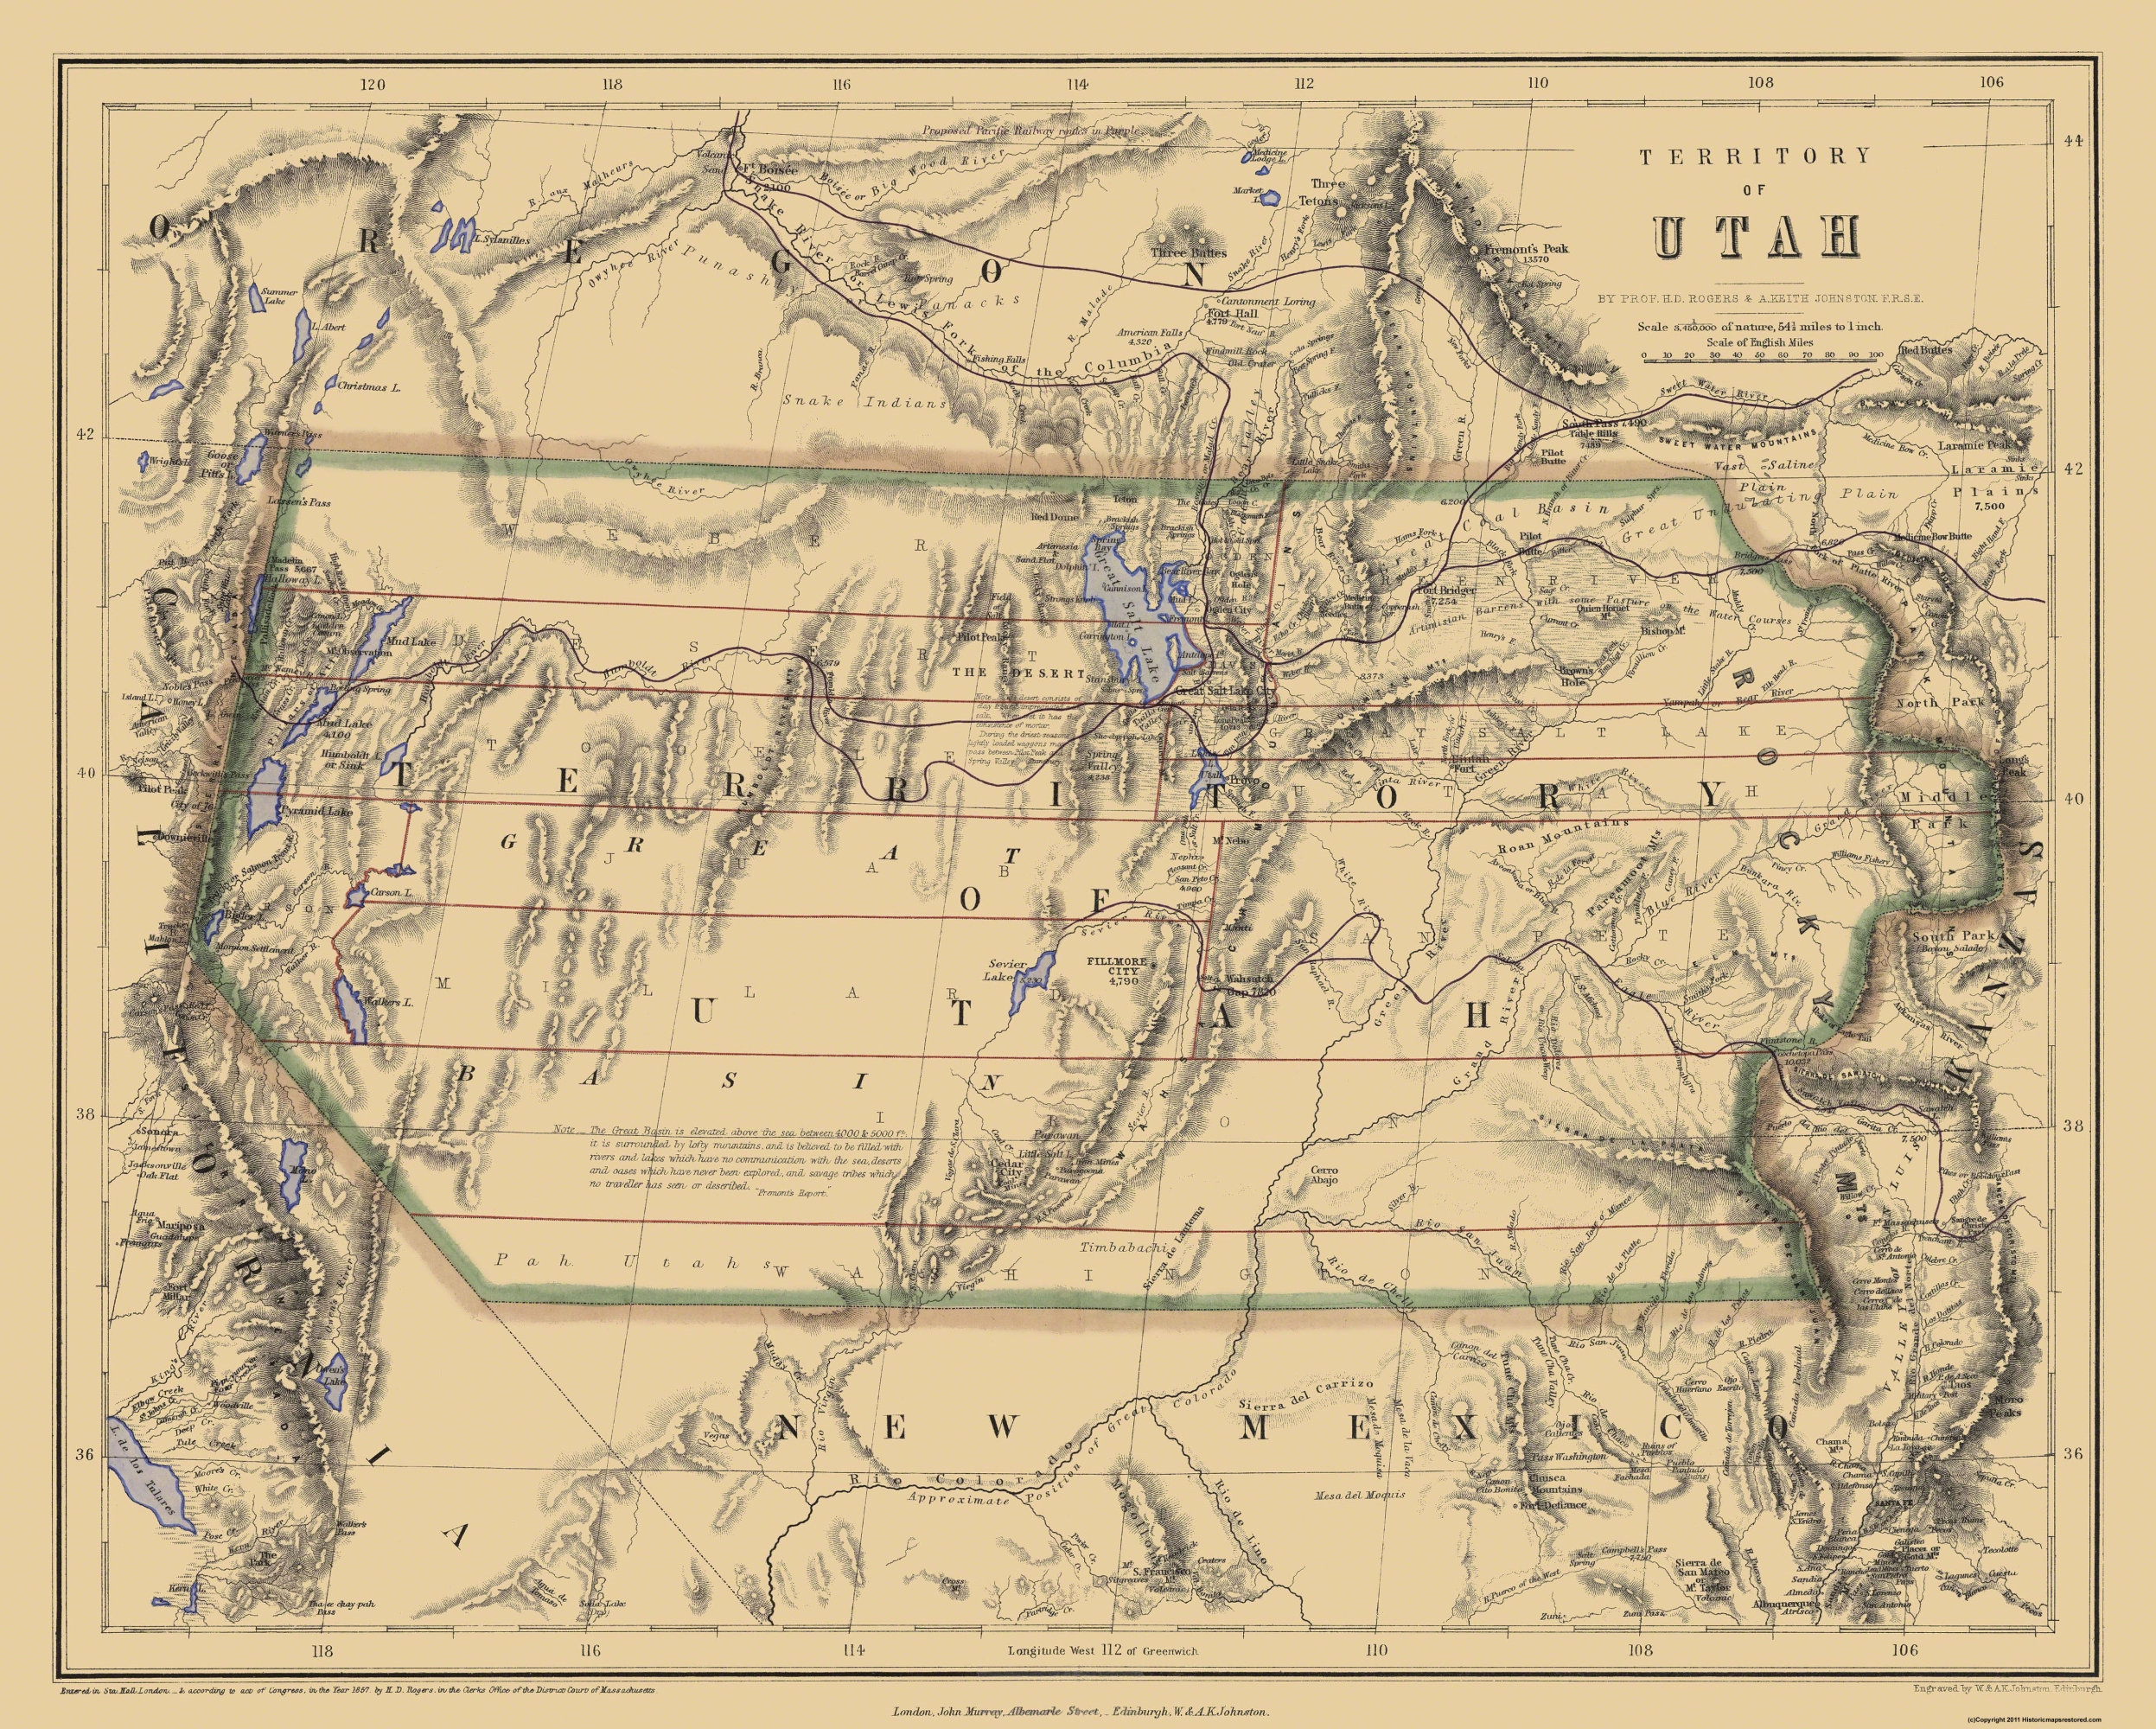 Old State Map - Utah Territory - Rogers and Holt 1857 - 28.69 x 23